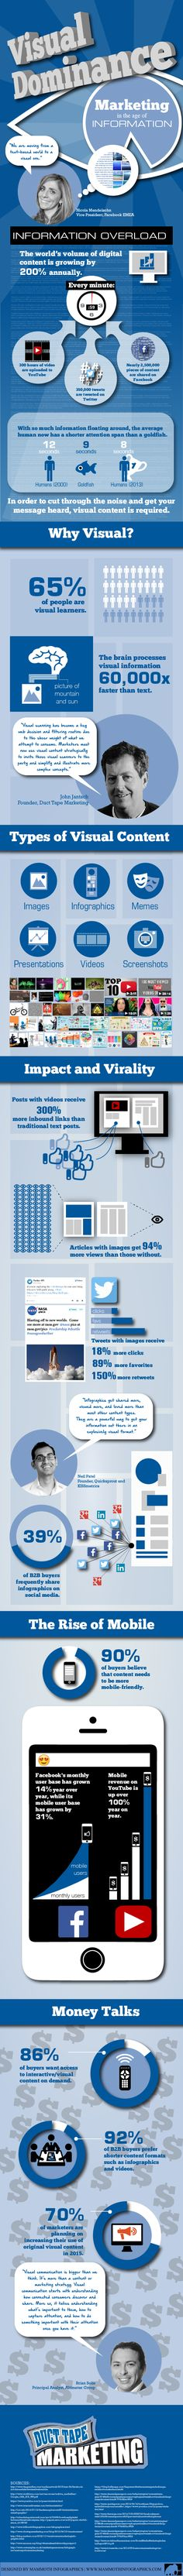 Visual dominance - Marketing In The Age of Information #infographic @m_a_m_m_o_t_h